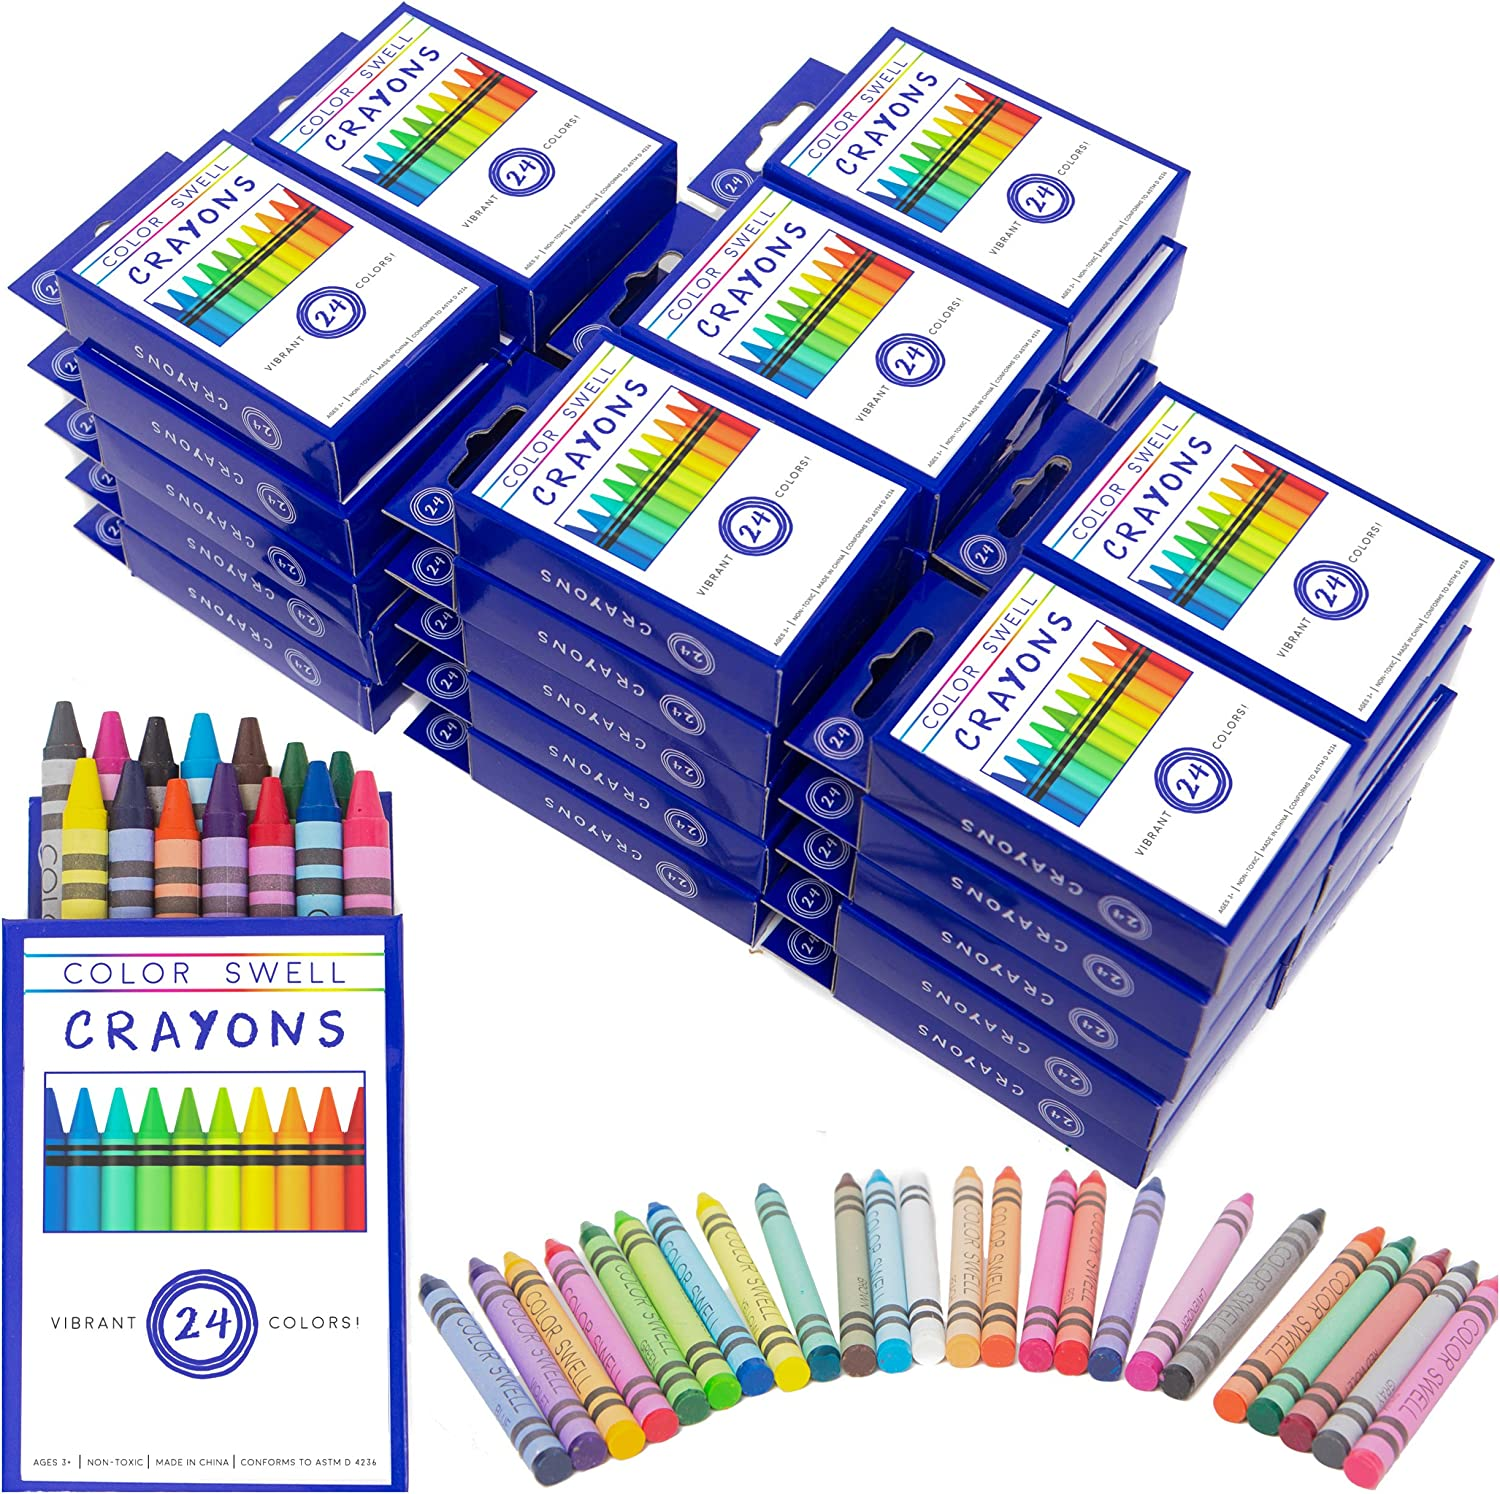 12 Washable Markers, 12 Watercolor Paints, 12 Crayons Color Swell Art Supplies Bulk Pack Perfect for Families Classrooms and Parties